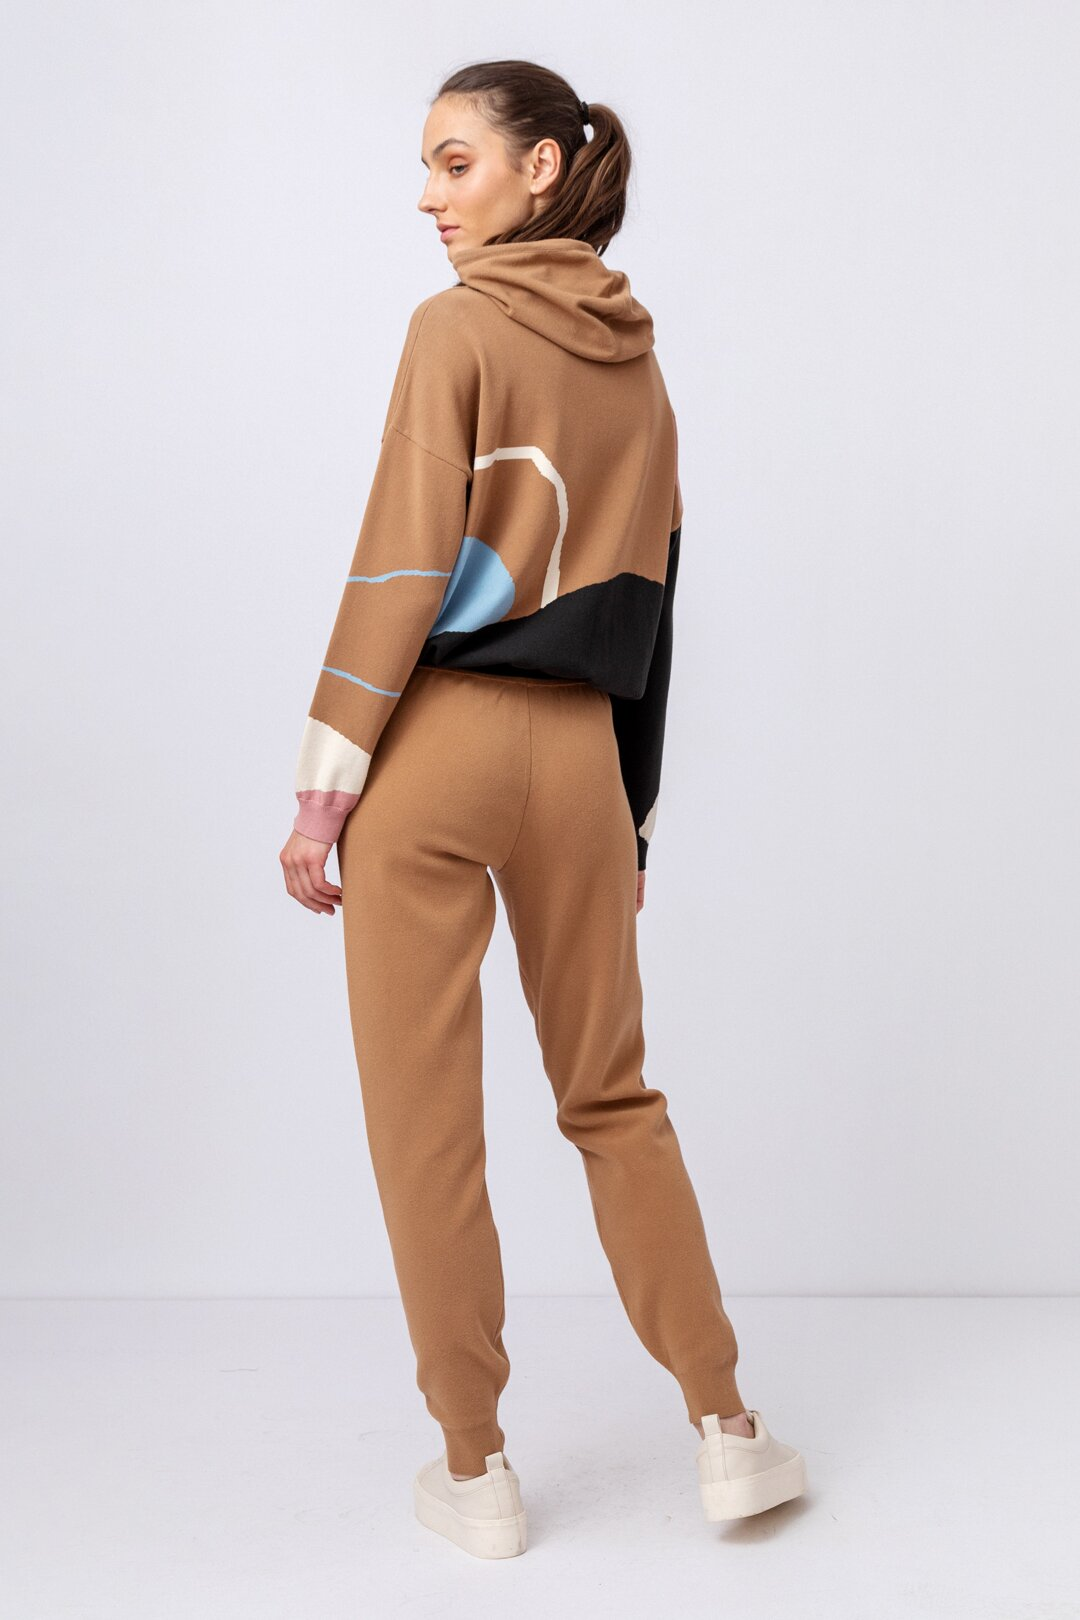 outfit-7c8a0001